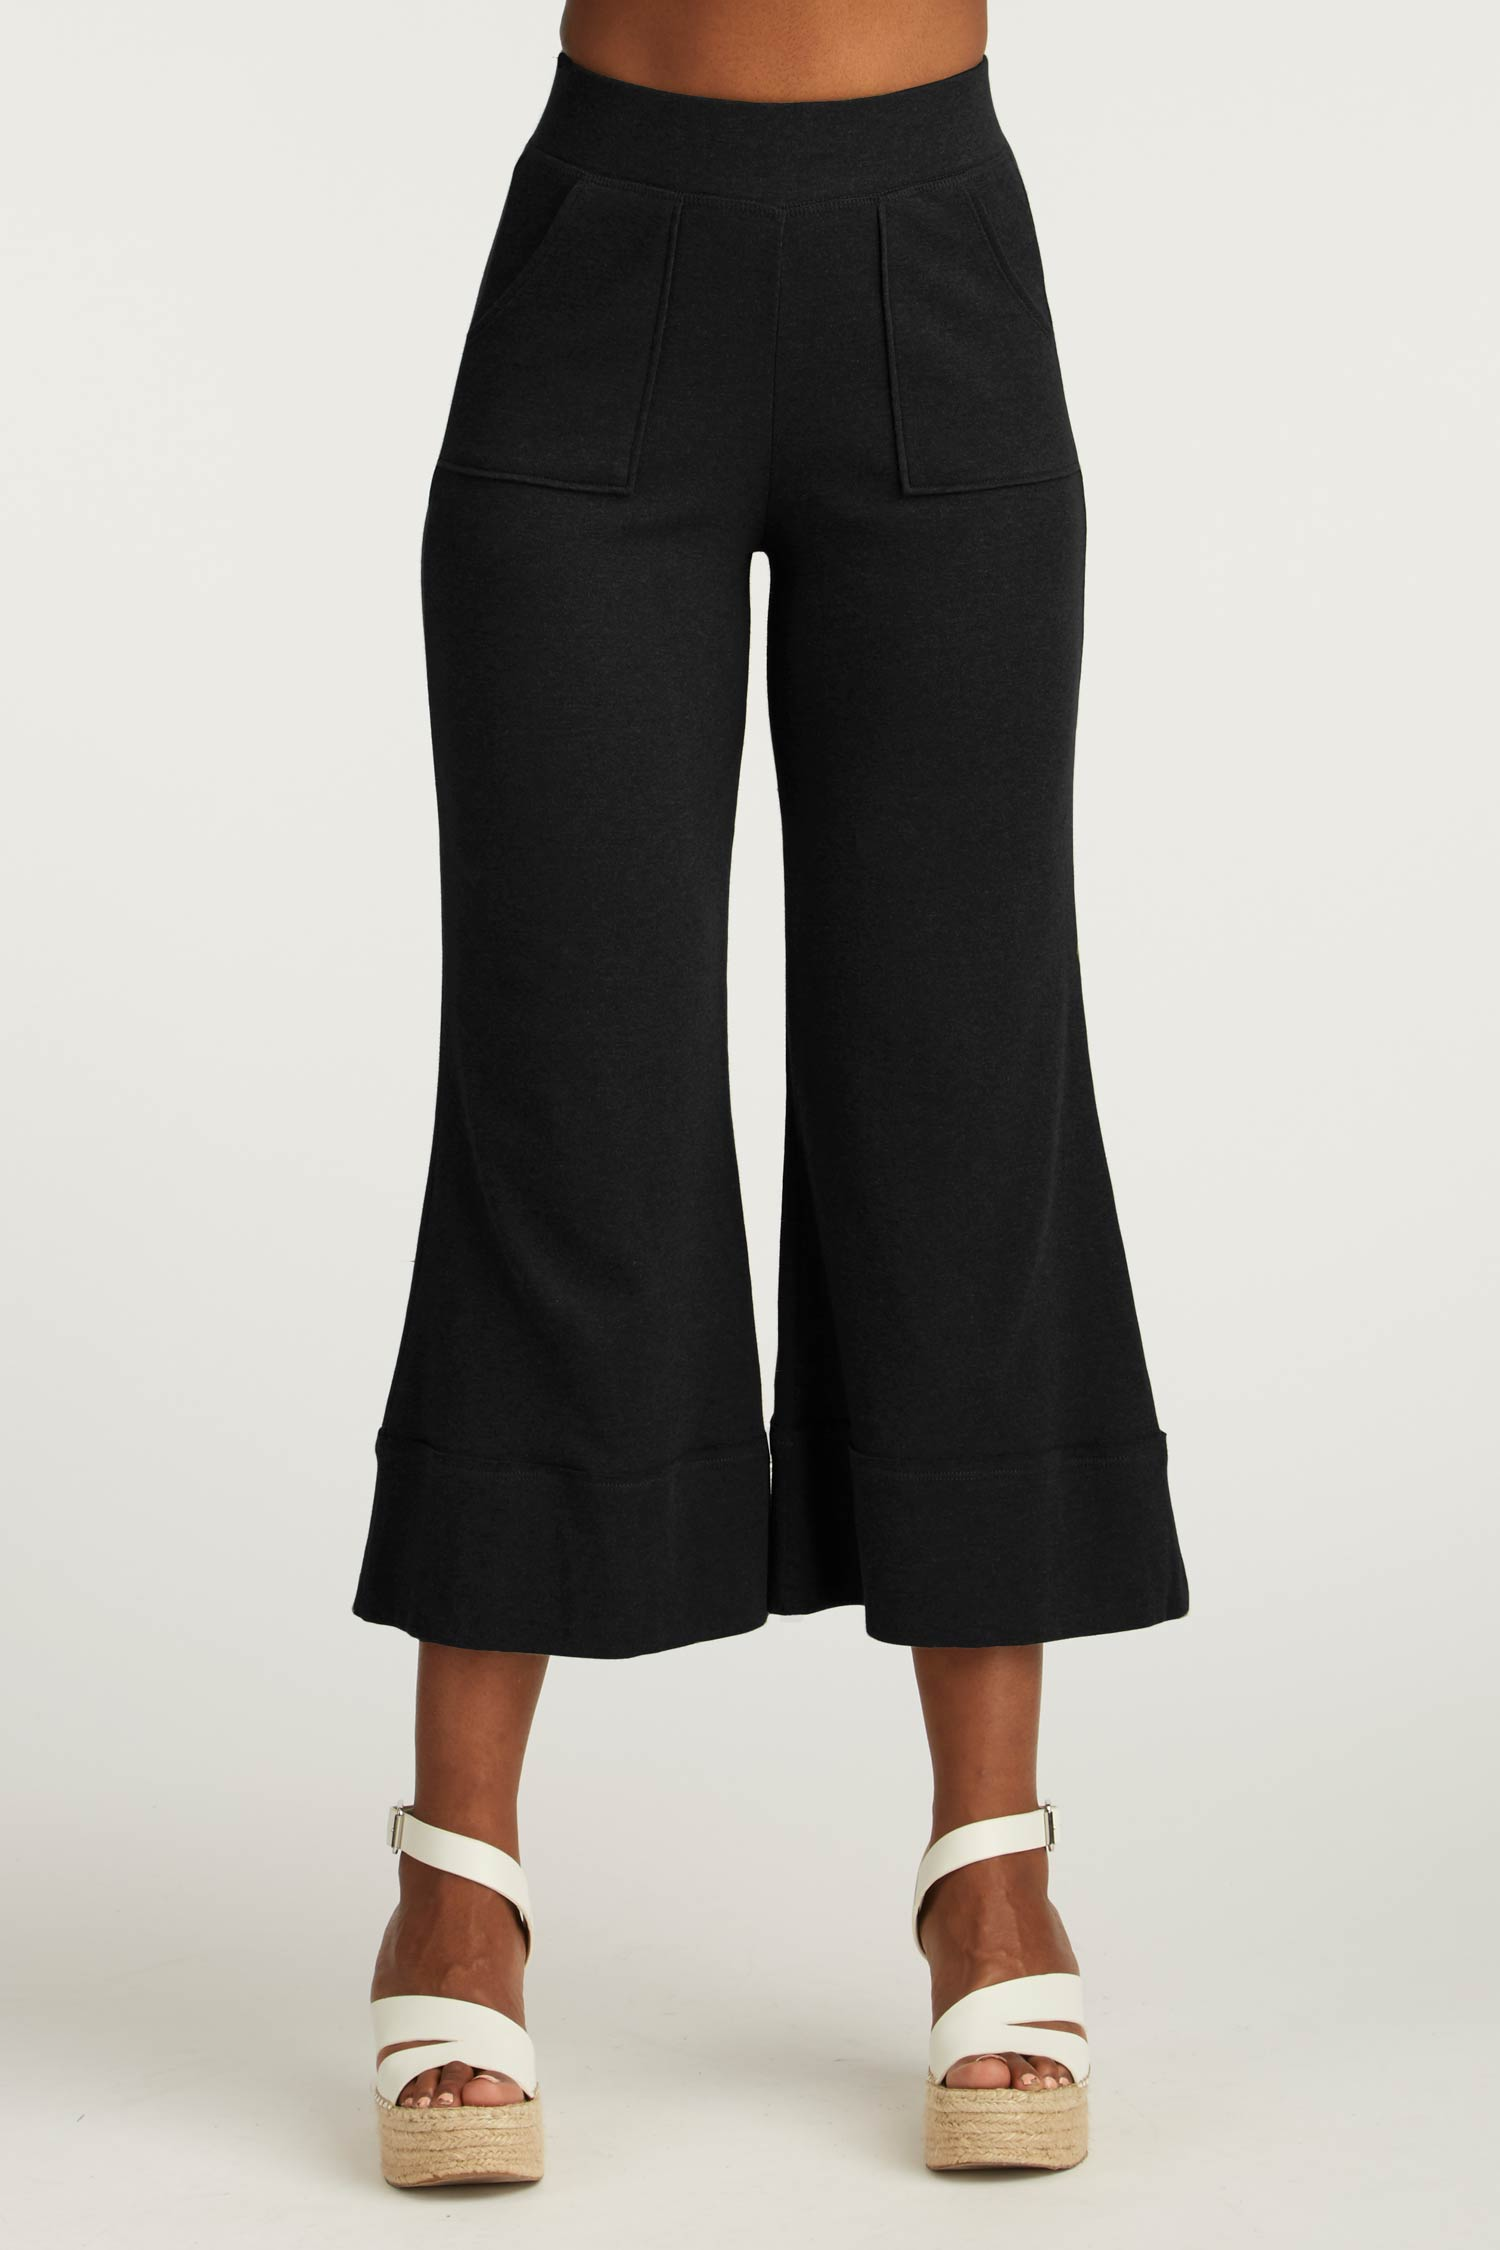 Womens Organic Cotton Pants | Cropped Wide Leg Pant | Black